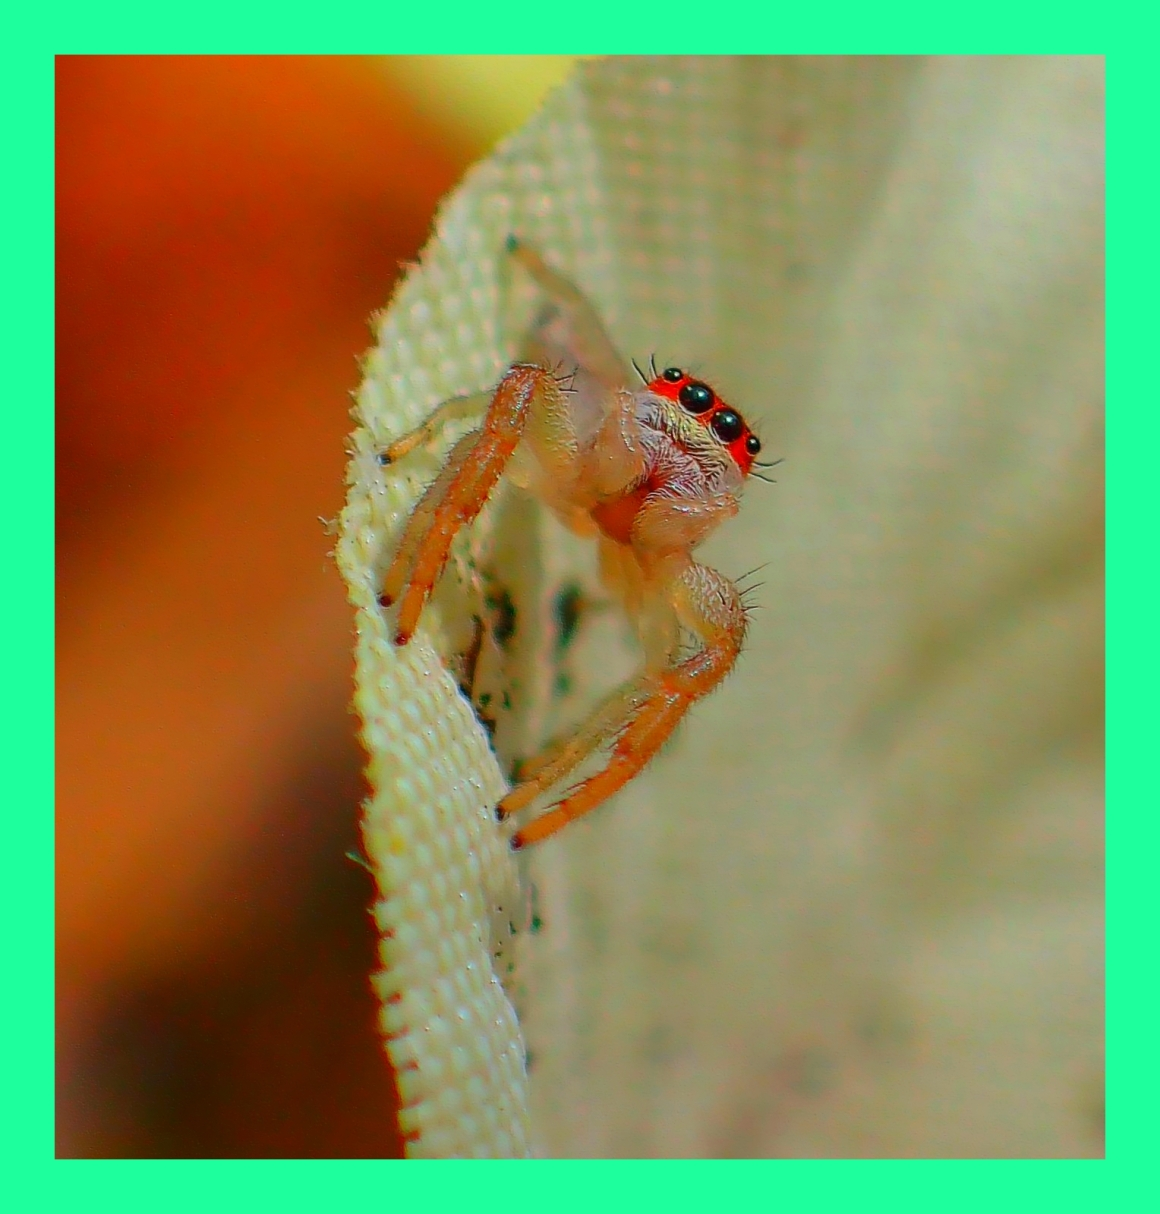 Tiny Jumping Spider. (1) Photo by Thomas Peace c. 2015